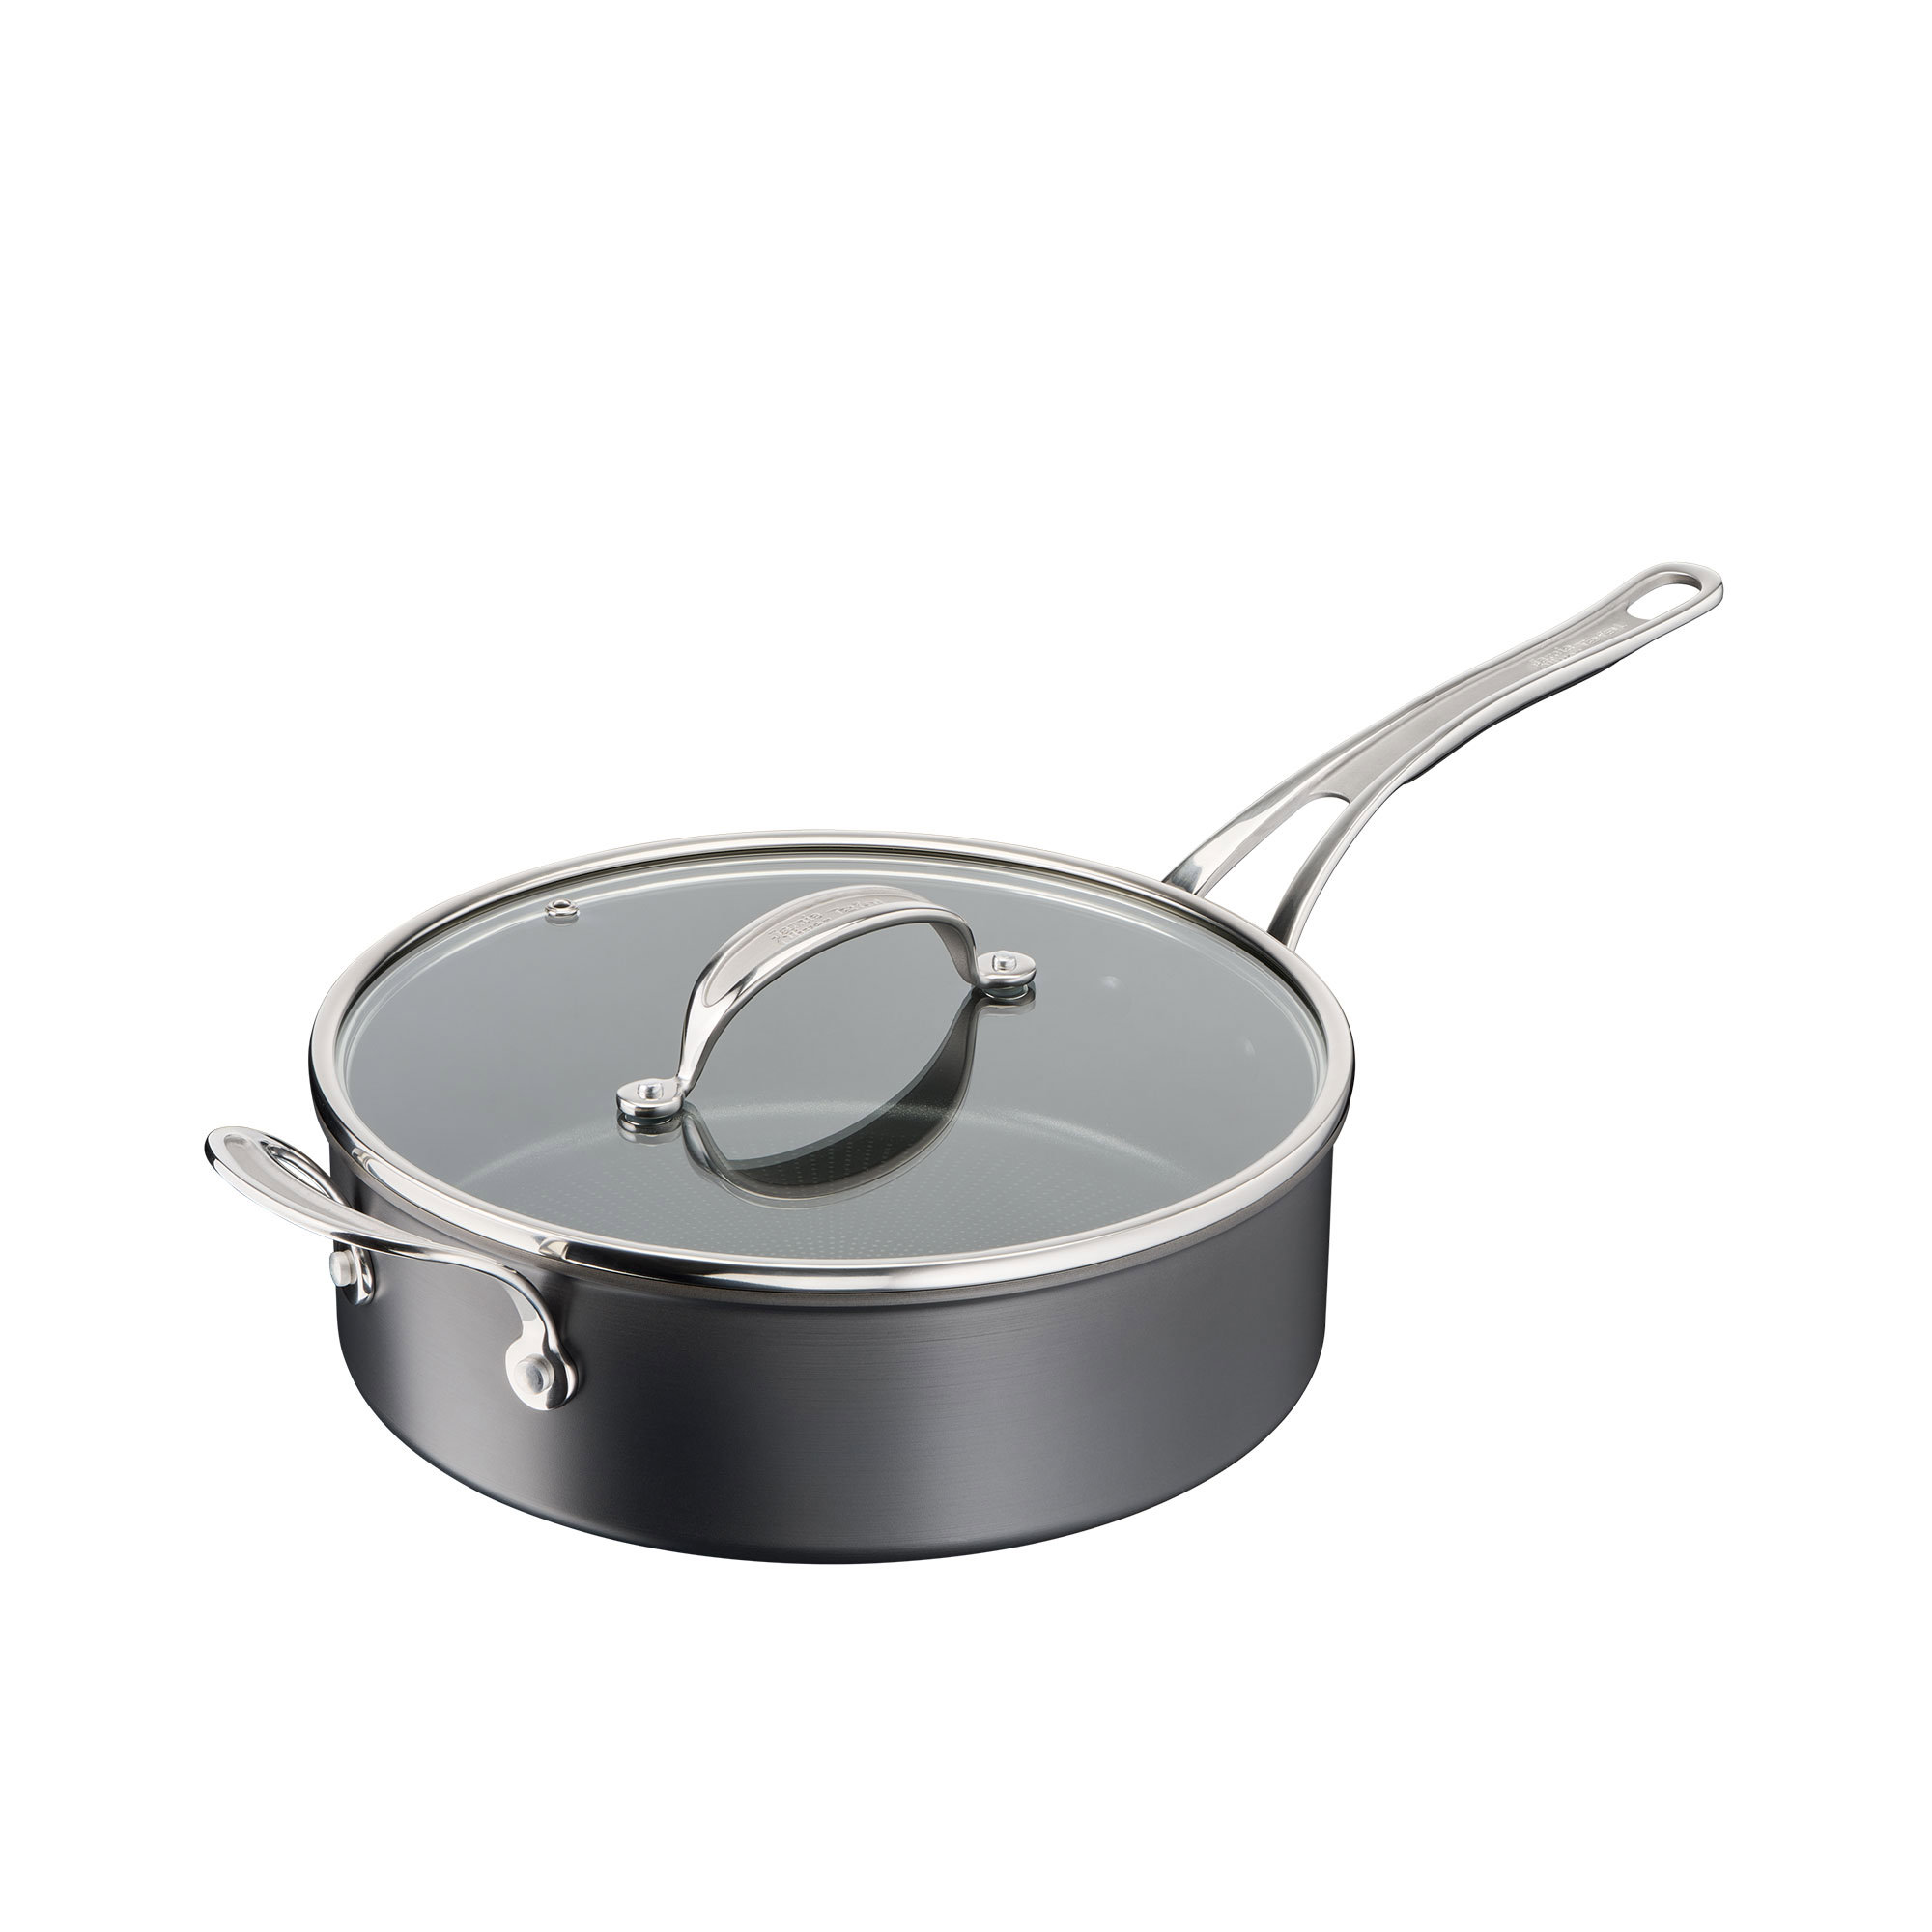 Jamie Oliver Cook's Classic Hard Anodised Induction Saute Pan 26cm